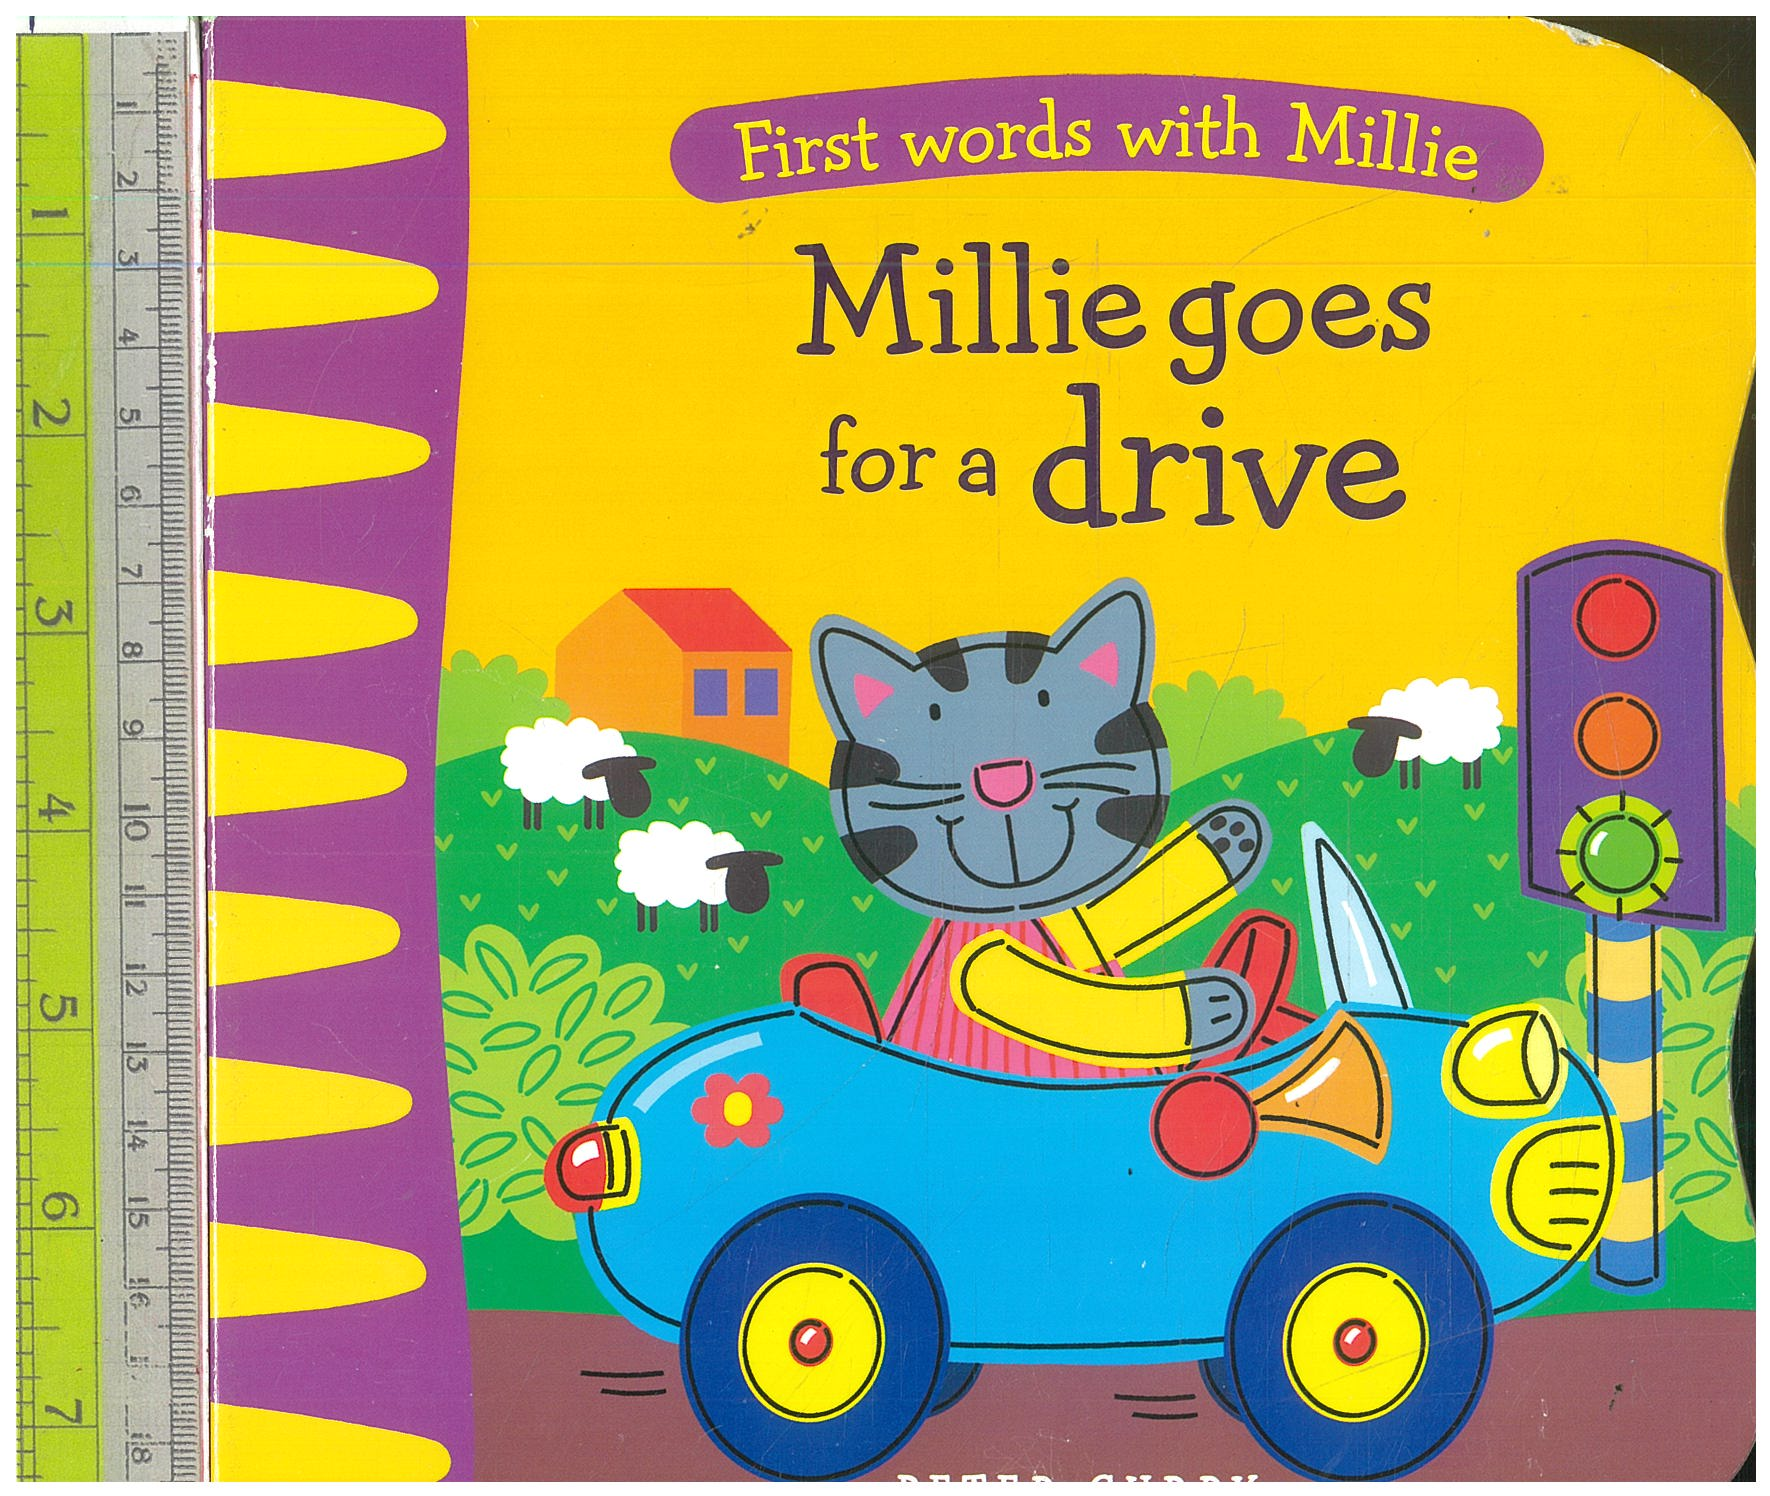 Millie goes a drive